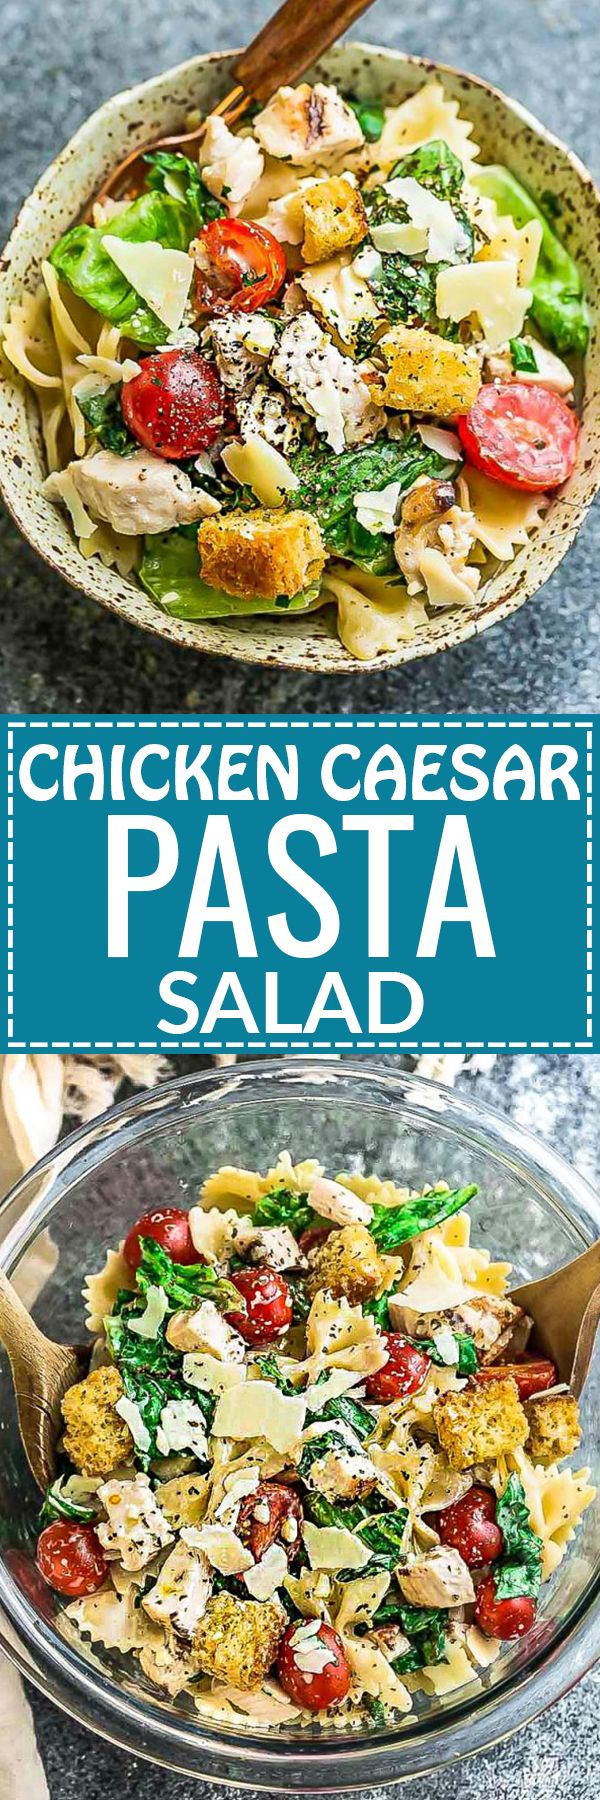 This Chicken Caesar Pasta Salad Meal Prep bowl is the perfect side dish for Memorial Day, Fourth of July and all your weekend barbecues, cookouts, grillouts, potlucks and picnics. Best of all, so easy to make and leftovers are delicious for school or work lunchboxes or lunch bowls.